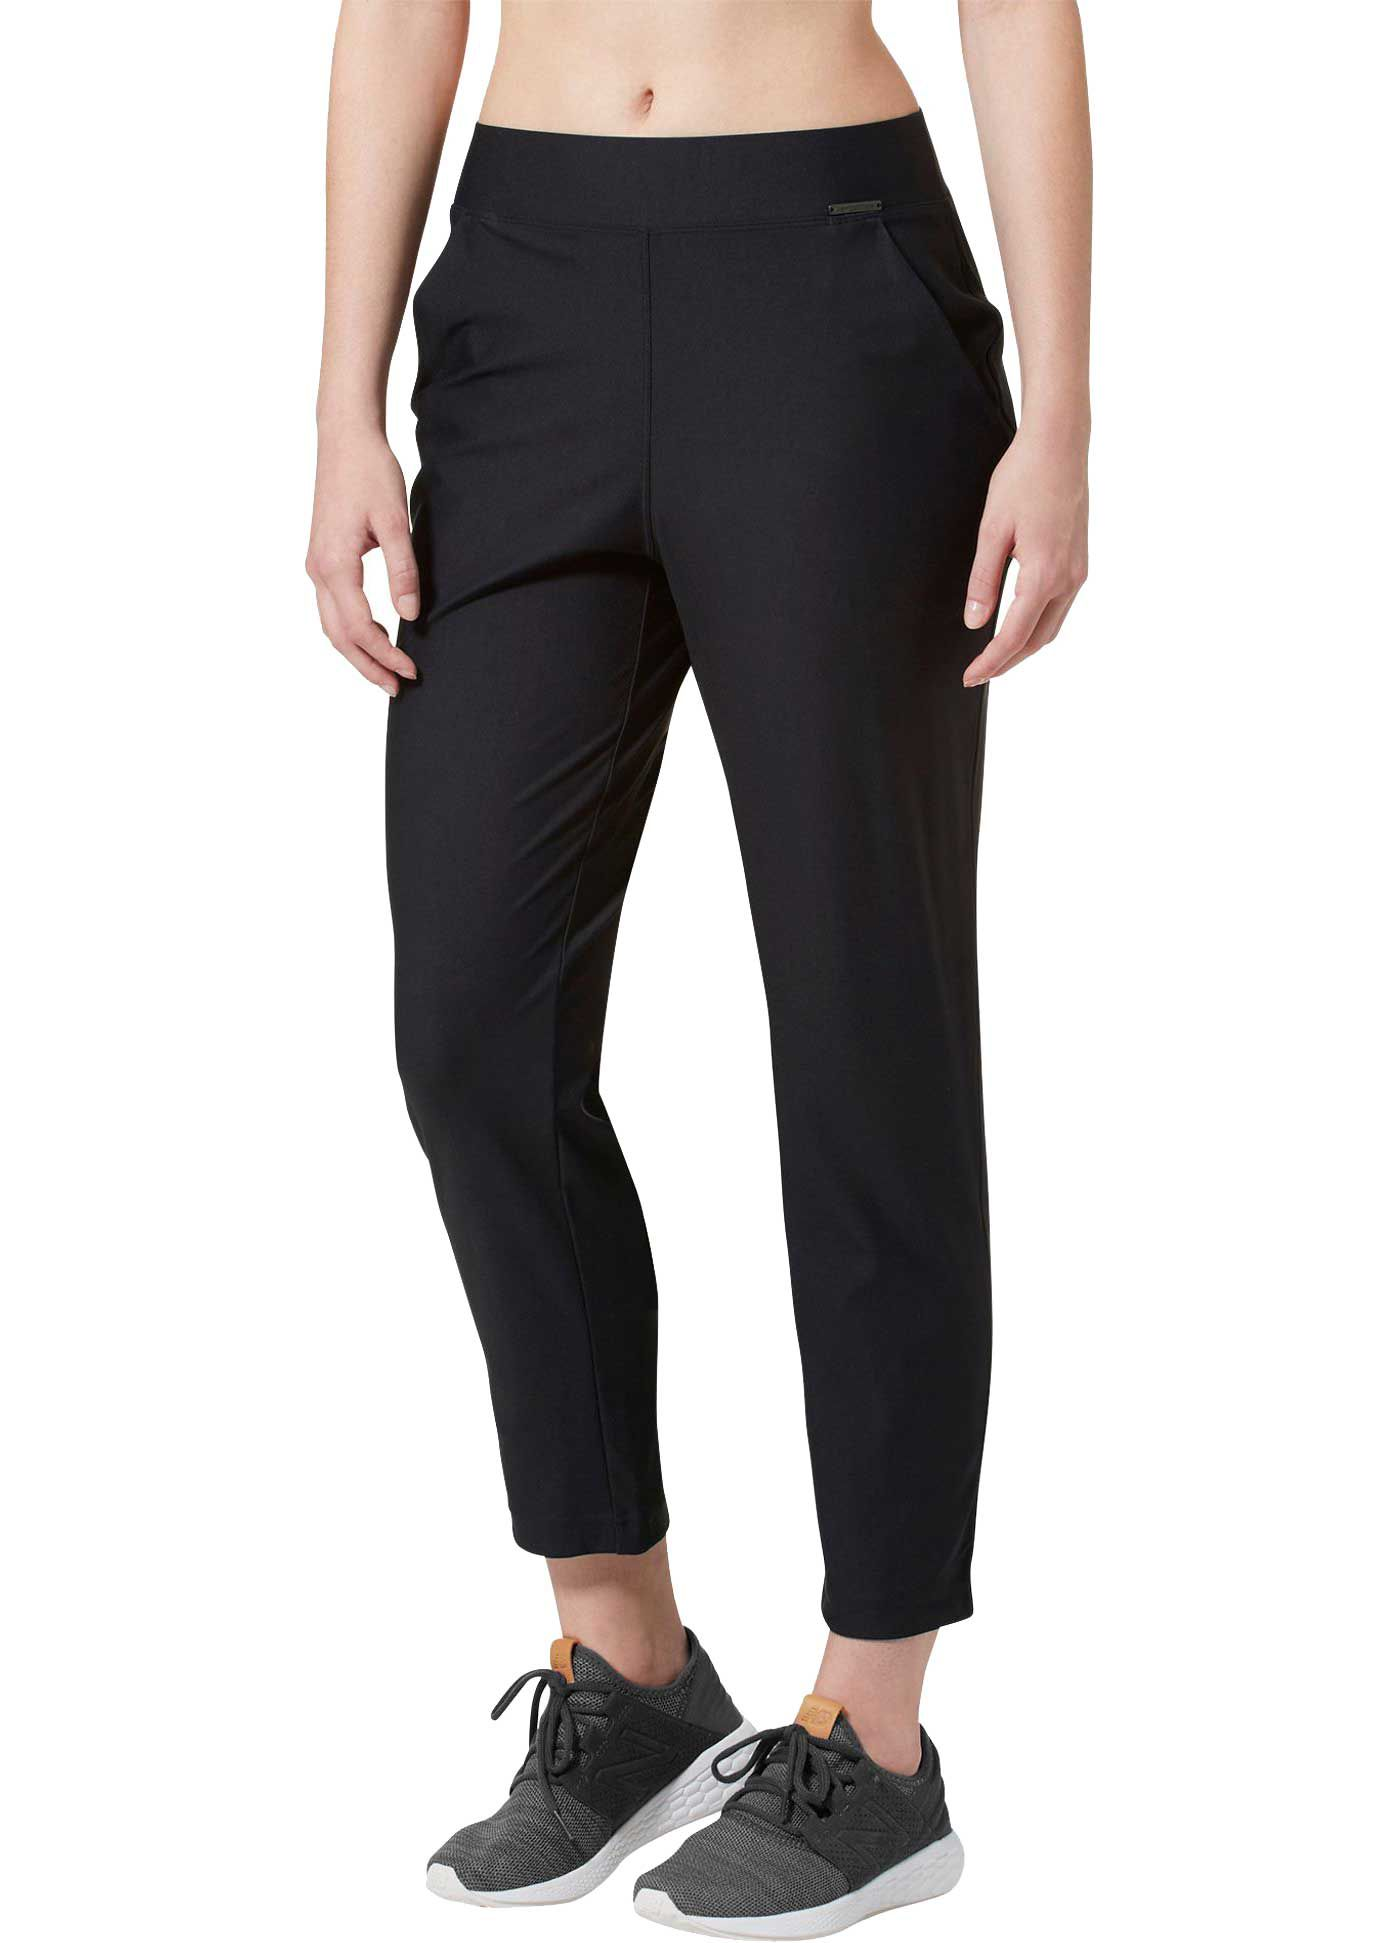 New Balance Women's Studio Pants